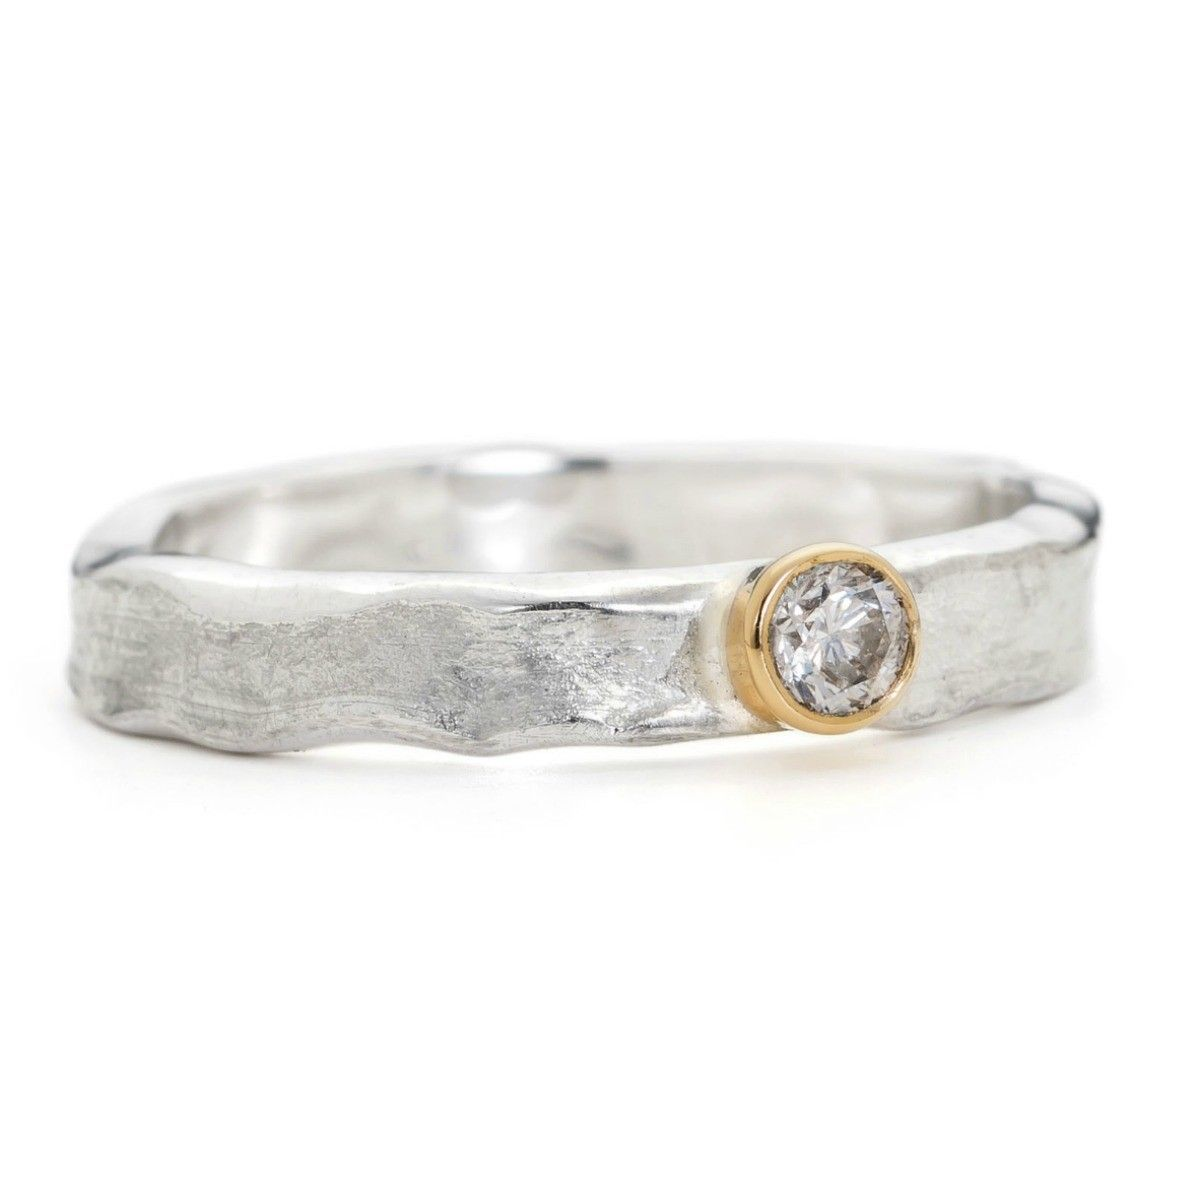 Handmade Diamond Ring 9ct Gold And Sterling Silver Set With A Gorgeous